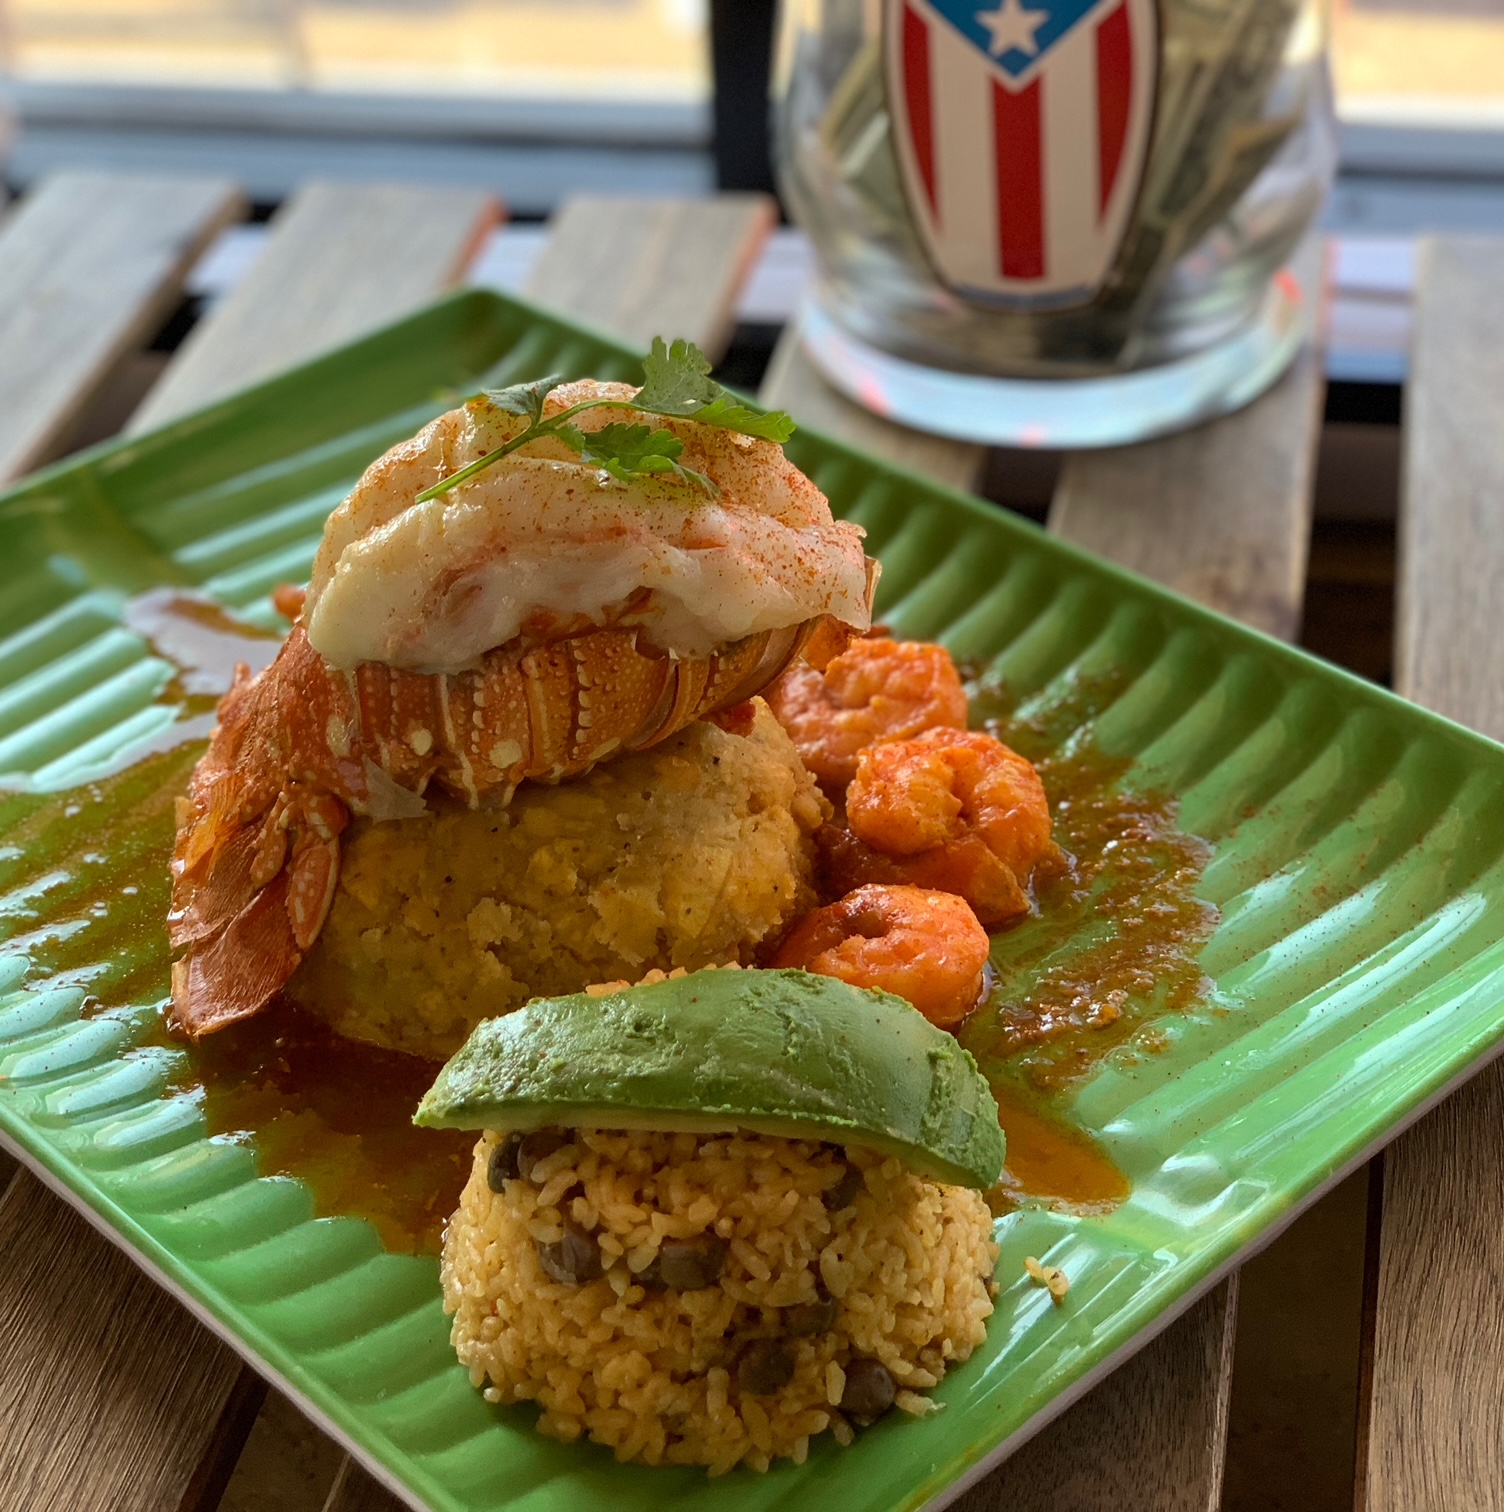 Mofongo topped with a whole lobster tail on a green plate with rice and avocado on the side